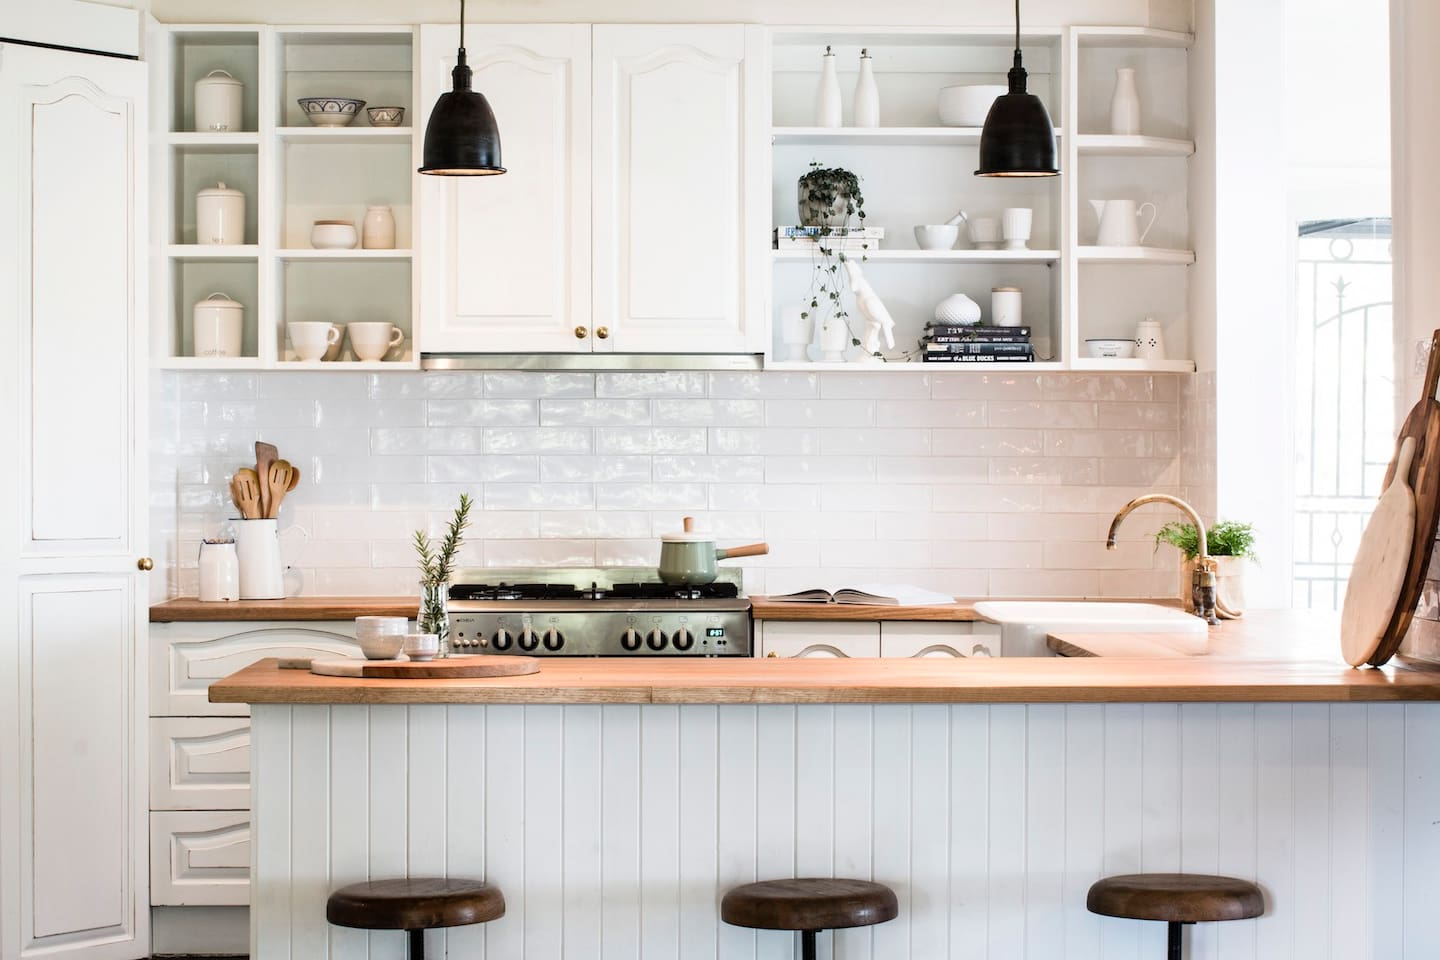 Rustic kitchen overlooking the beautiful elm tree